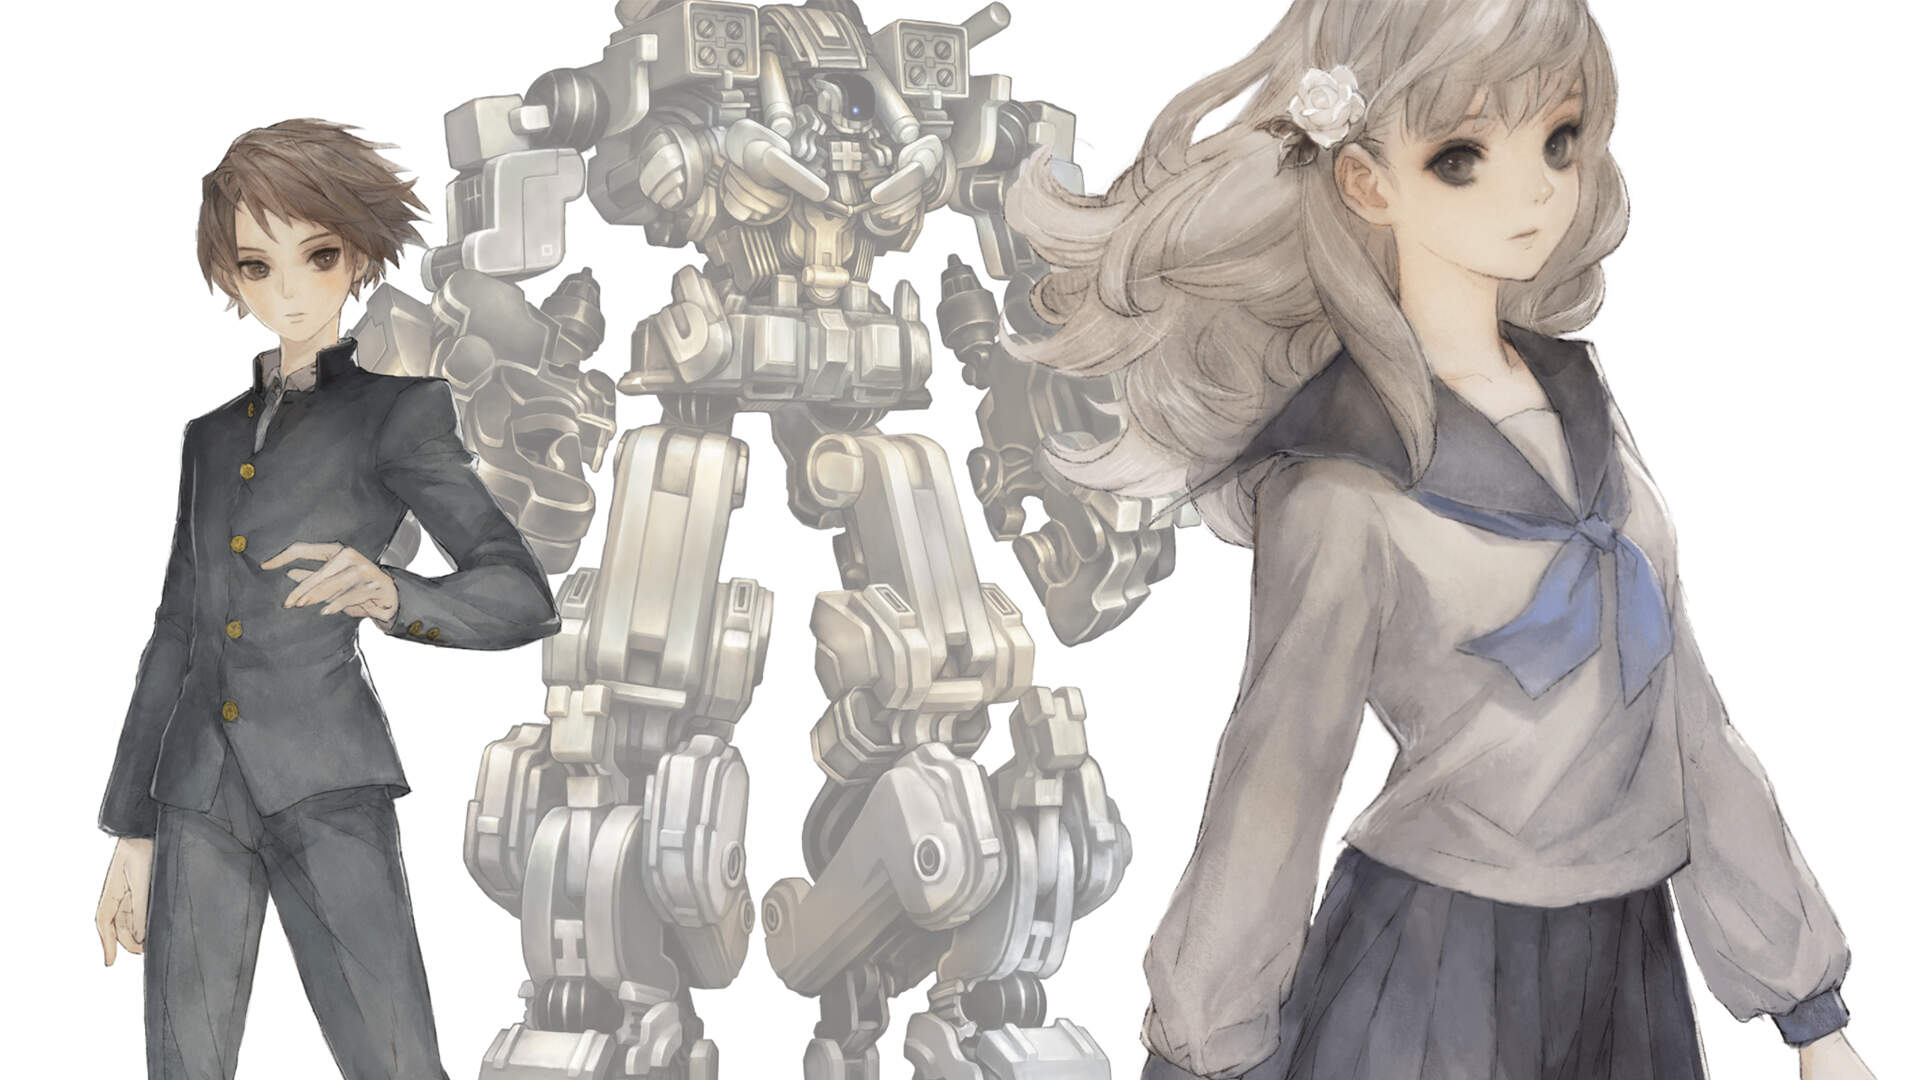 13 Sentinels: Aegis Rim Finally Comes to North America This September